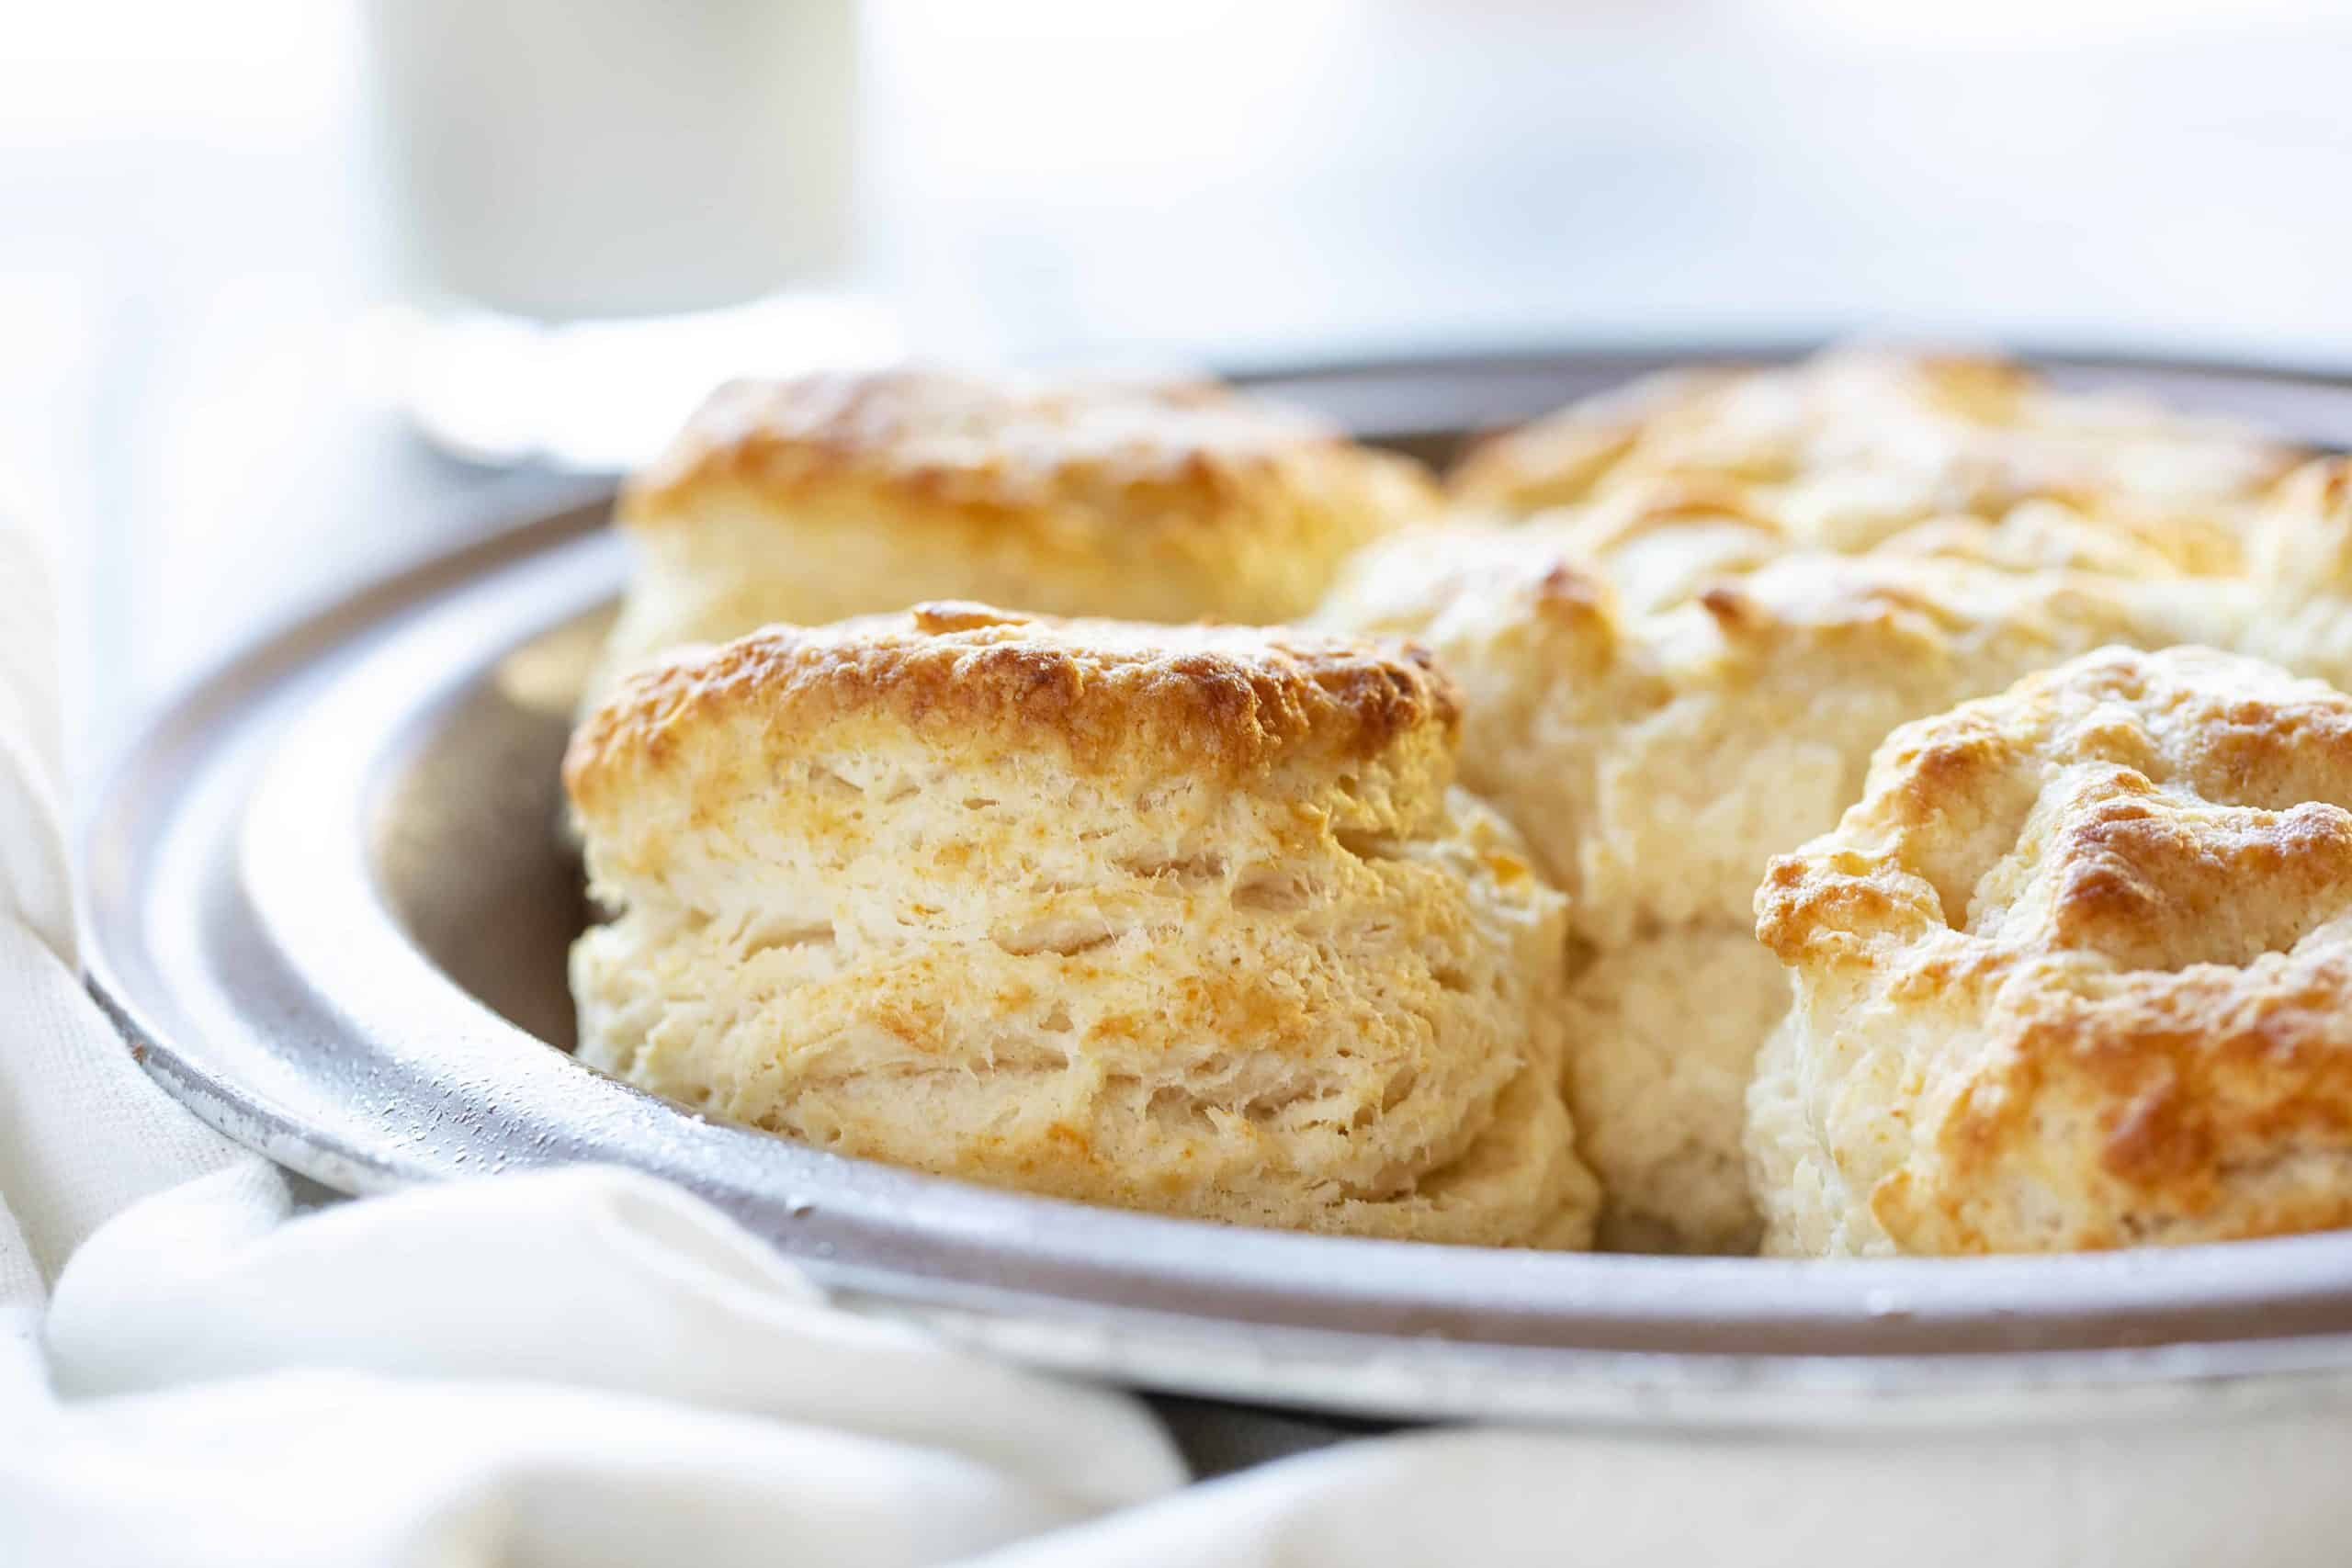 Buttermilk Biscuits for Biscuits and Gravy